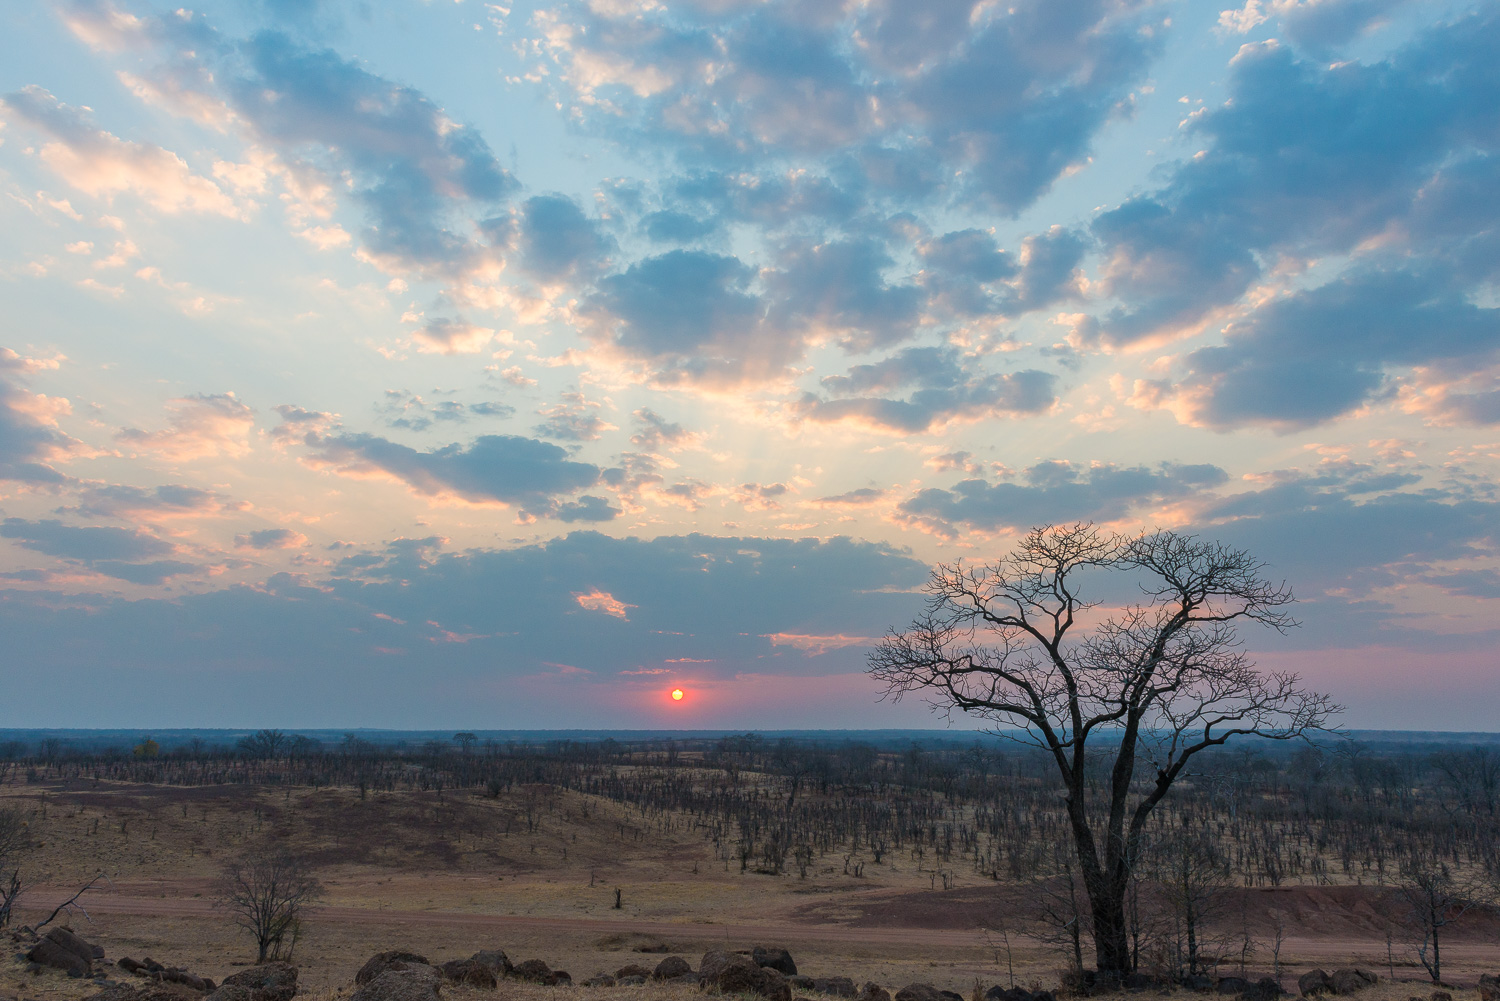 Sunset, Kuyenda Lodge, South Luangwa, Zambia